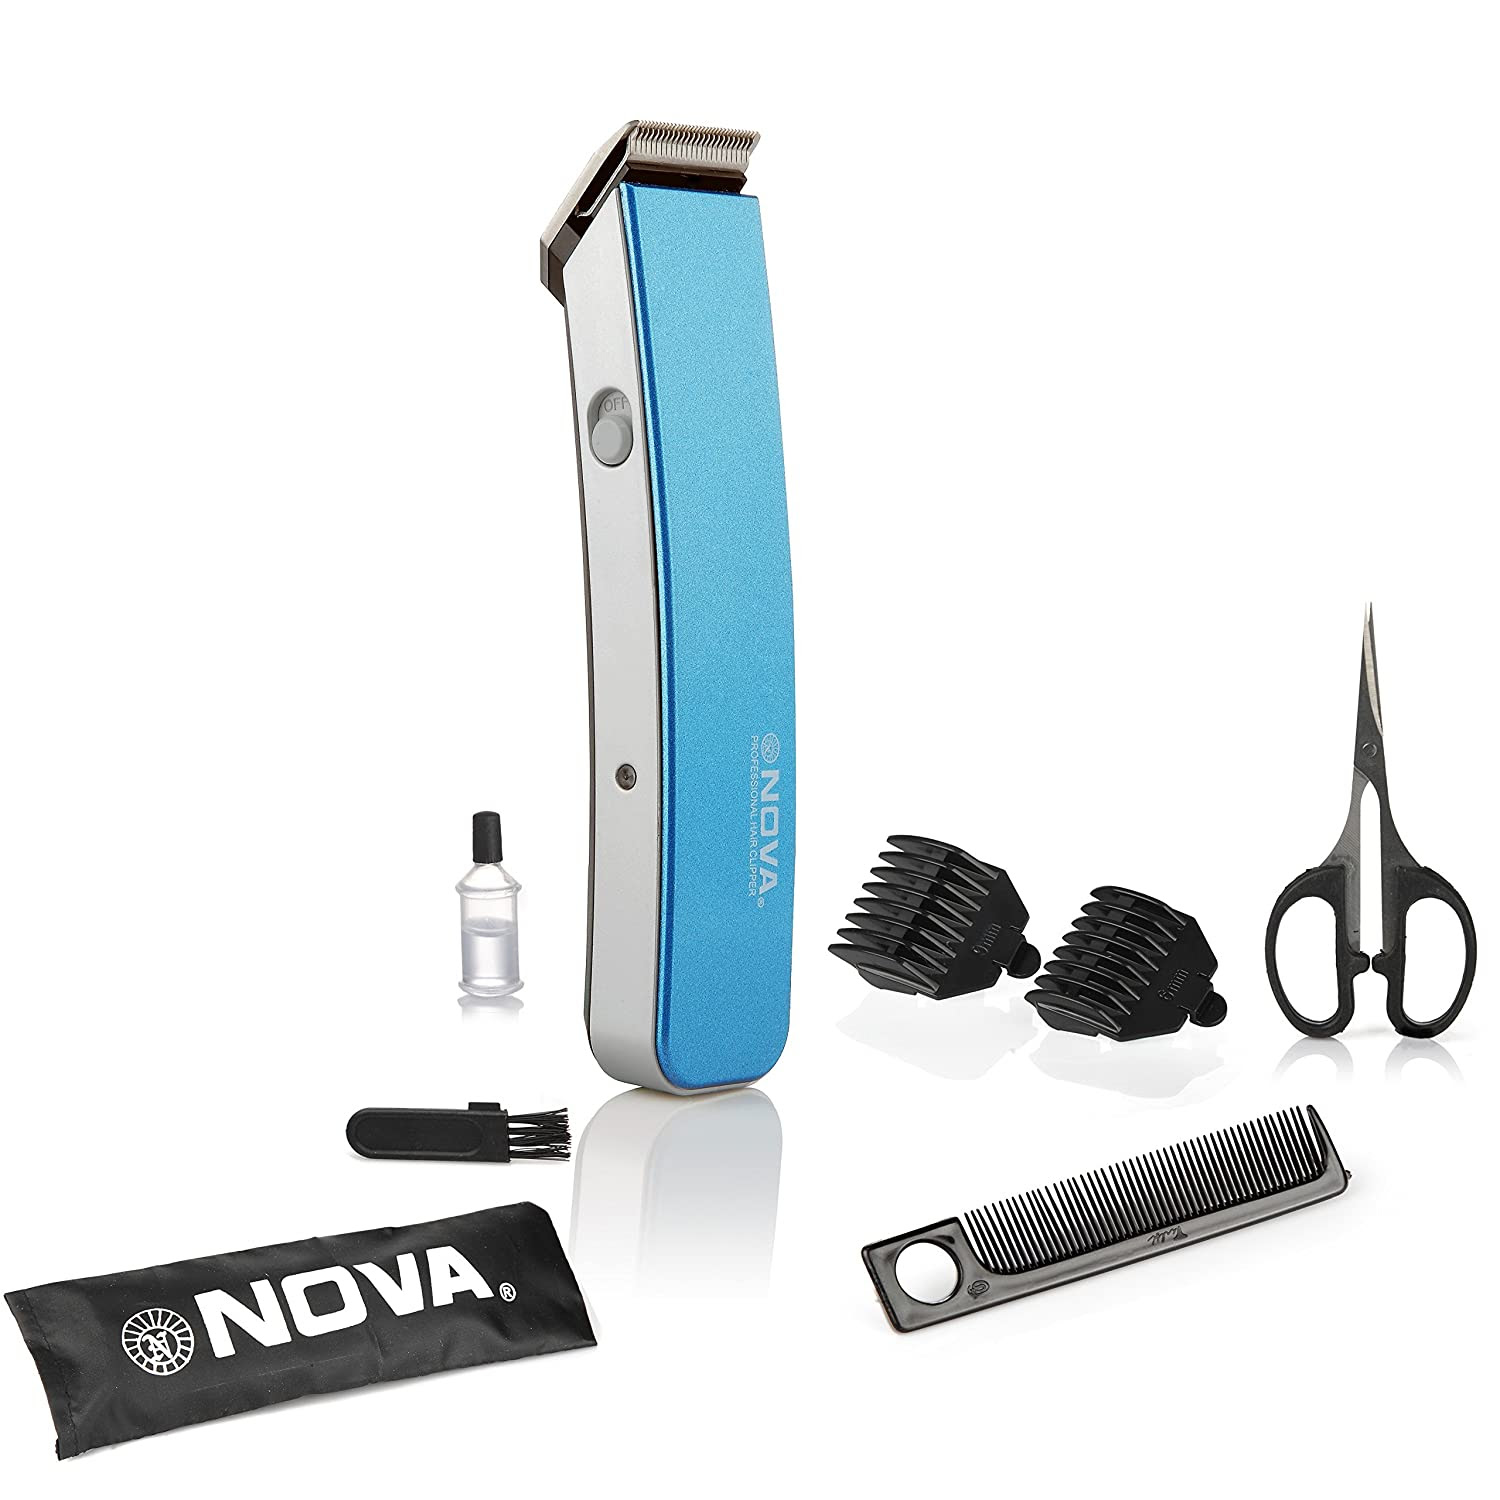 Deals on Nova NHT 1047 Pro Skin Advance Trimmer (Blue)